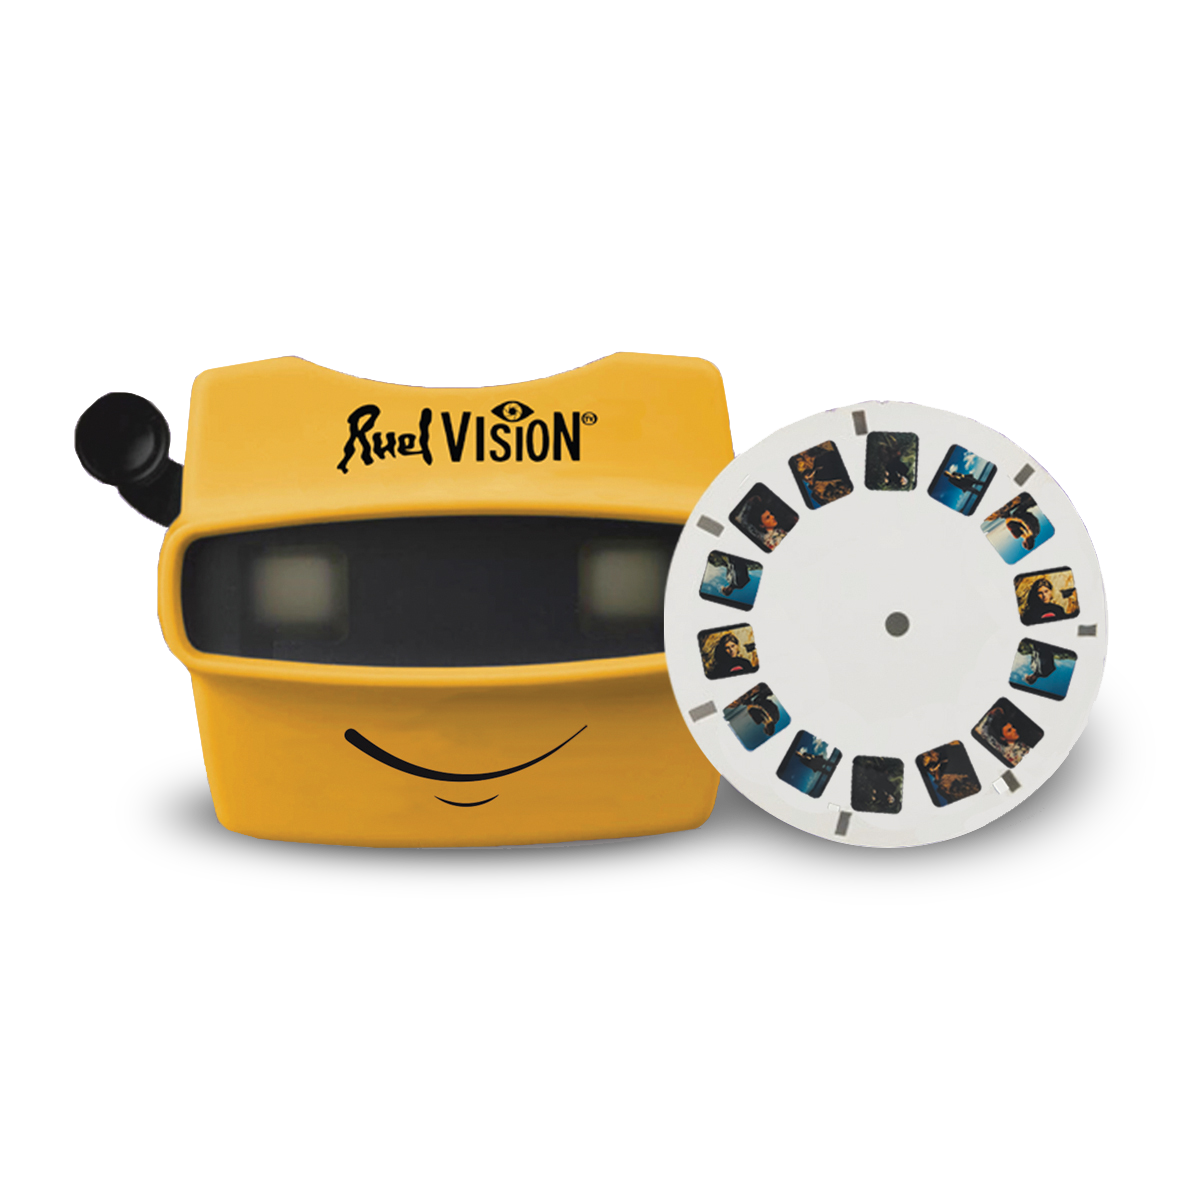 Ruel Vision View Finder